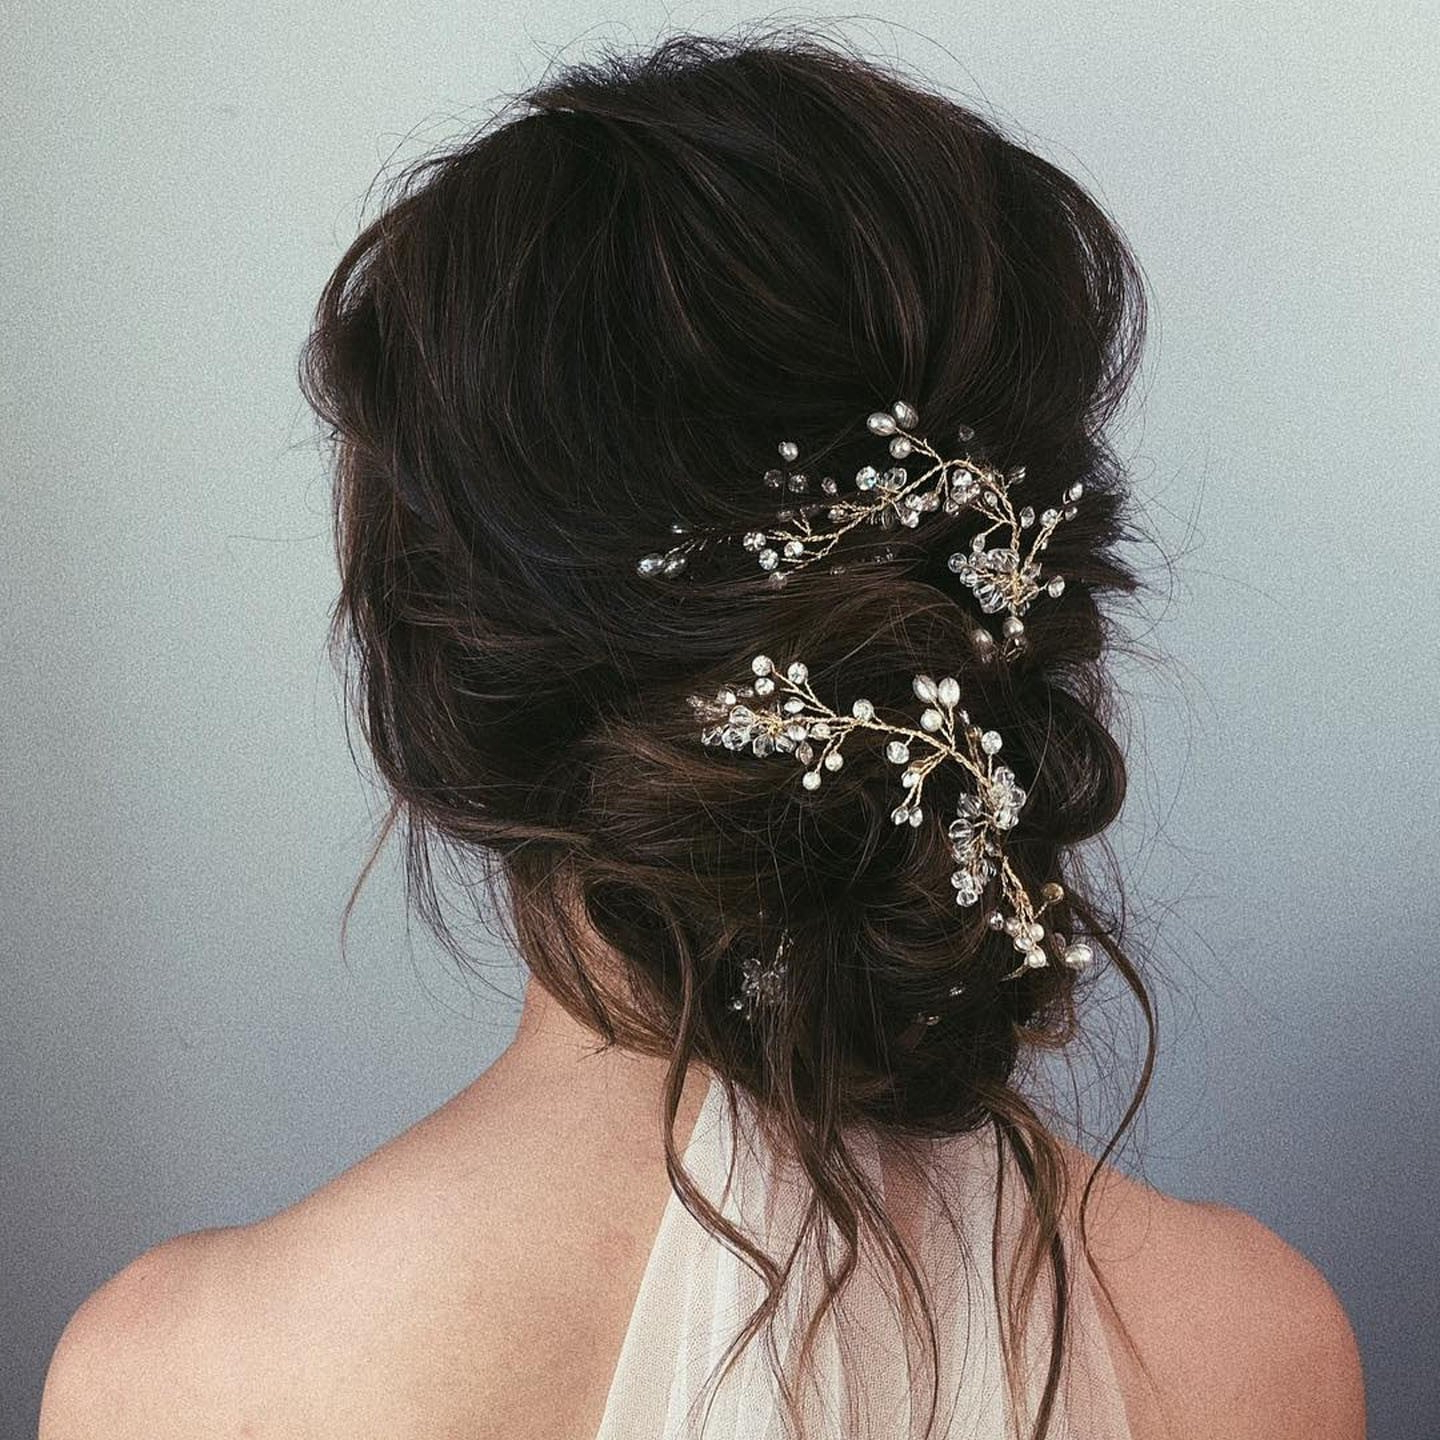 Messy Bun Wedding Hair (View 7 of 20)